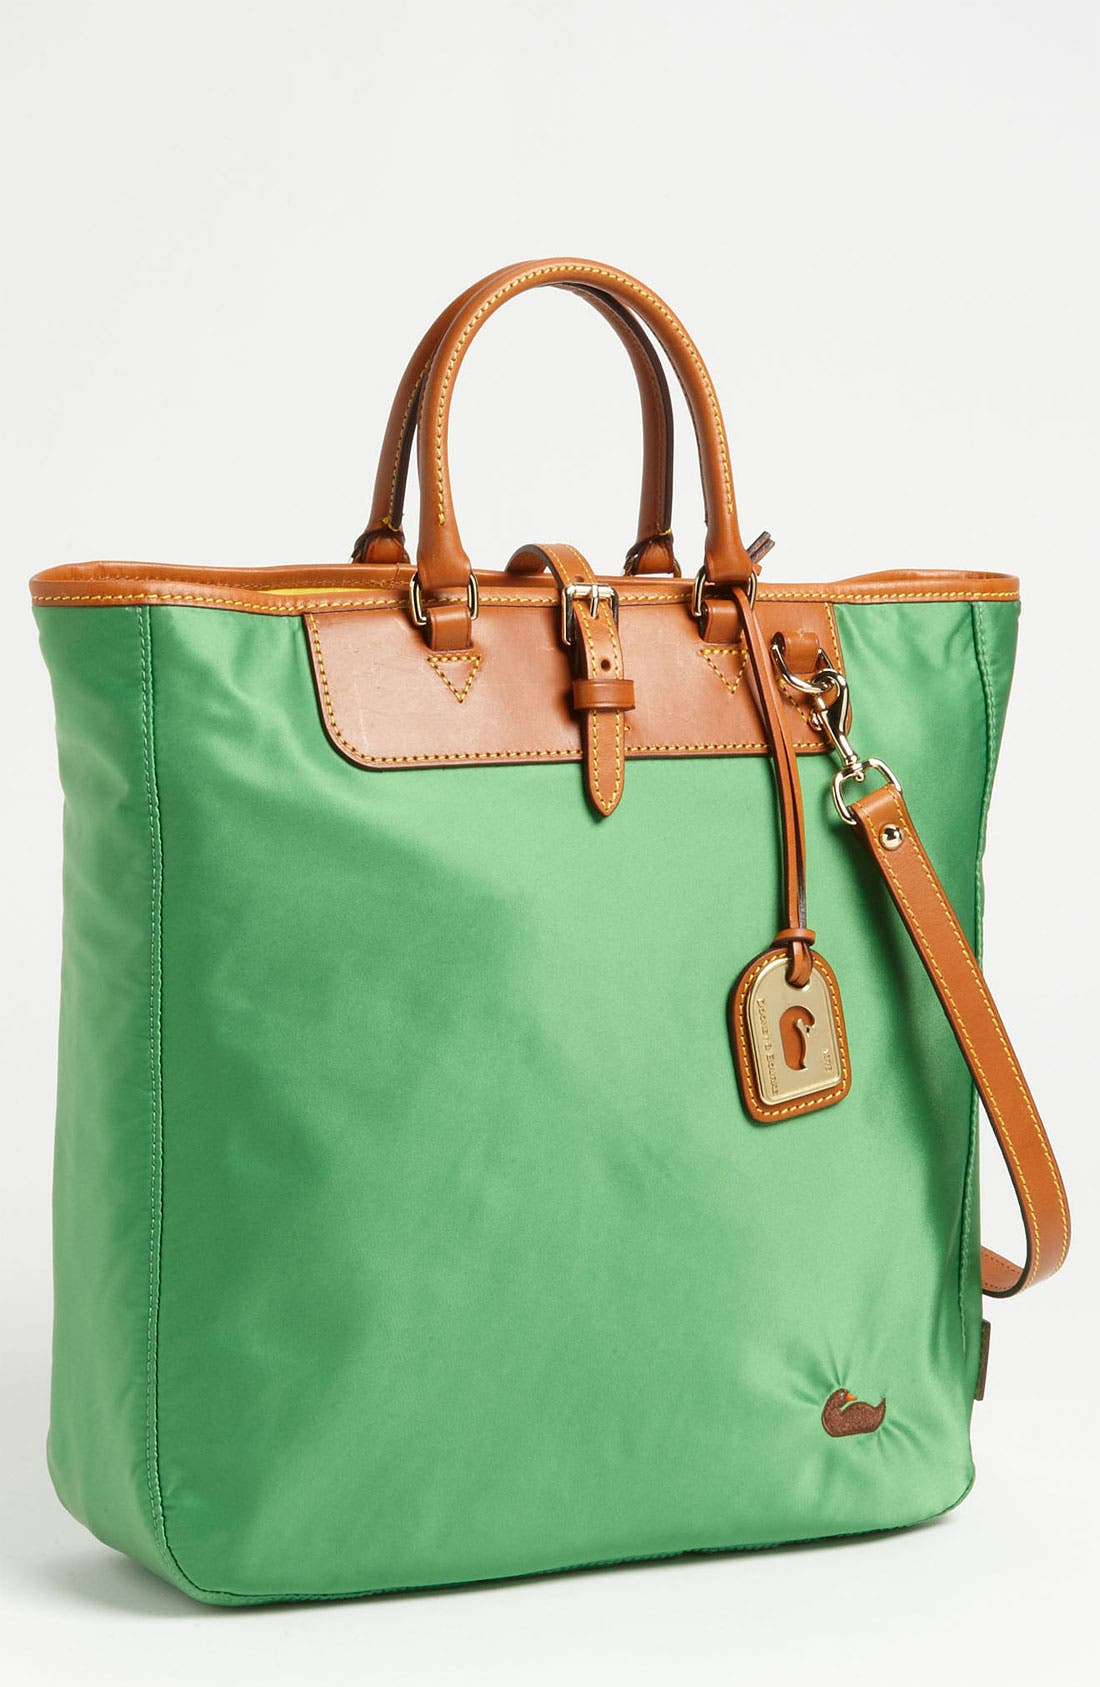 Main Image - Dooney & Bourke 'Editors' Tote